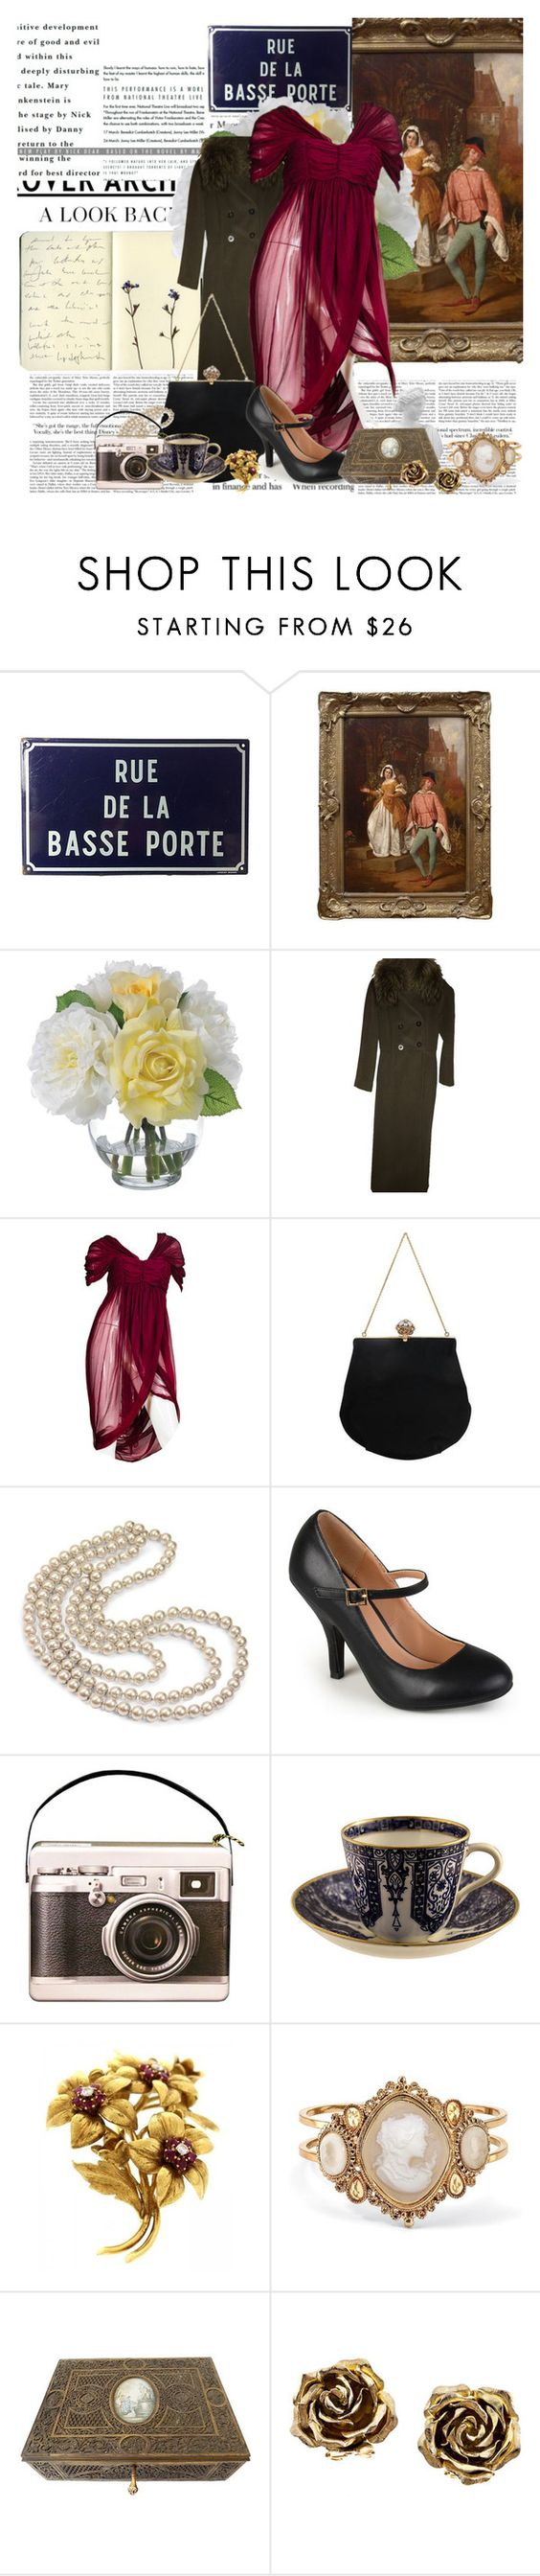 """rue de la"" by noextrate ❤ liked on Polyvore featuring Moleskine, Diane James, Marella, Alexander McQueen, Koret, Sweet Romance, Journee Collection, Tiffany & Co. and Palm Beach Jewelry"